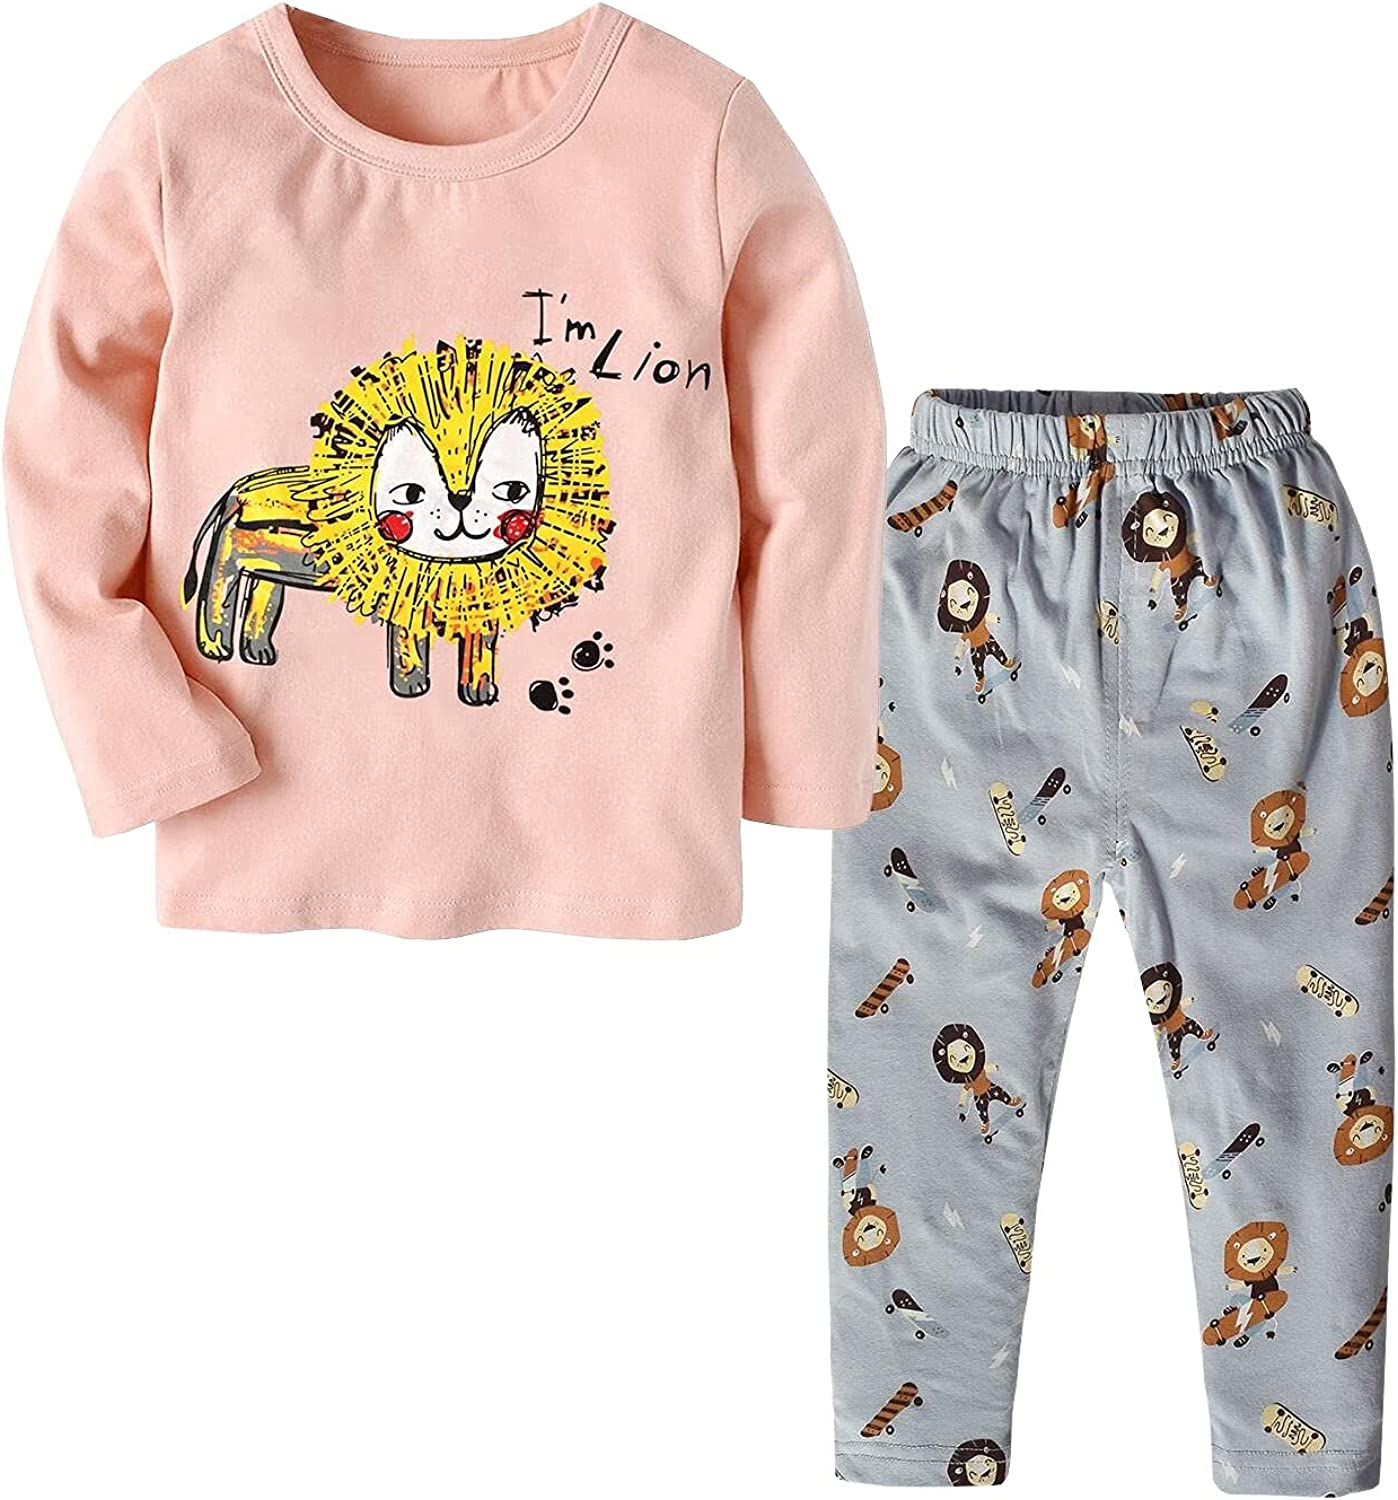 Infant Toddler Boys Girls 2-Piece Clothes Set Cotton Long-Sleeved Top+ Cute Printed Trousers Formfitting Baby Clothing Set